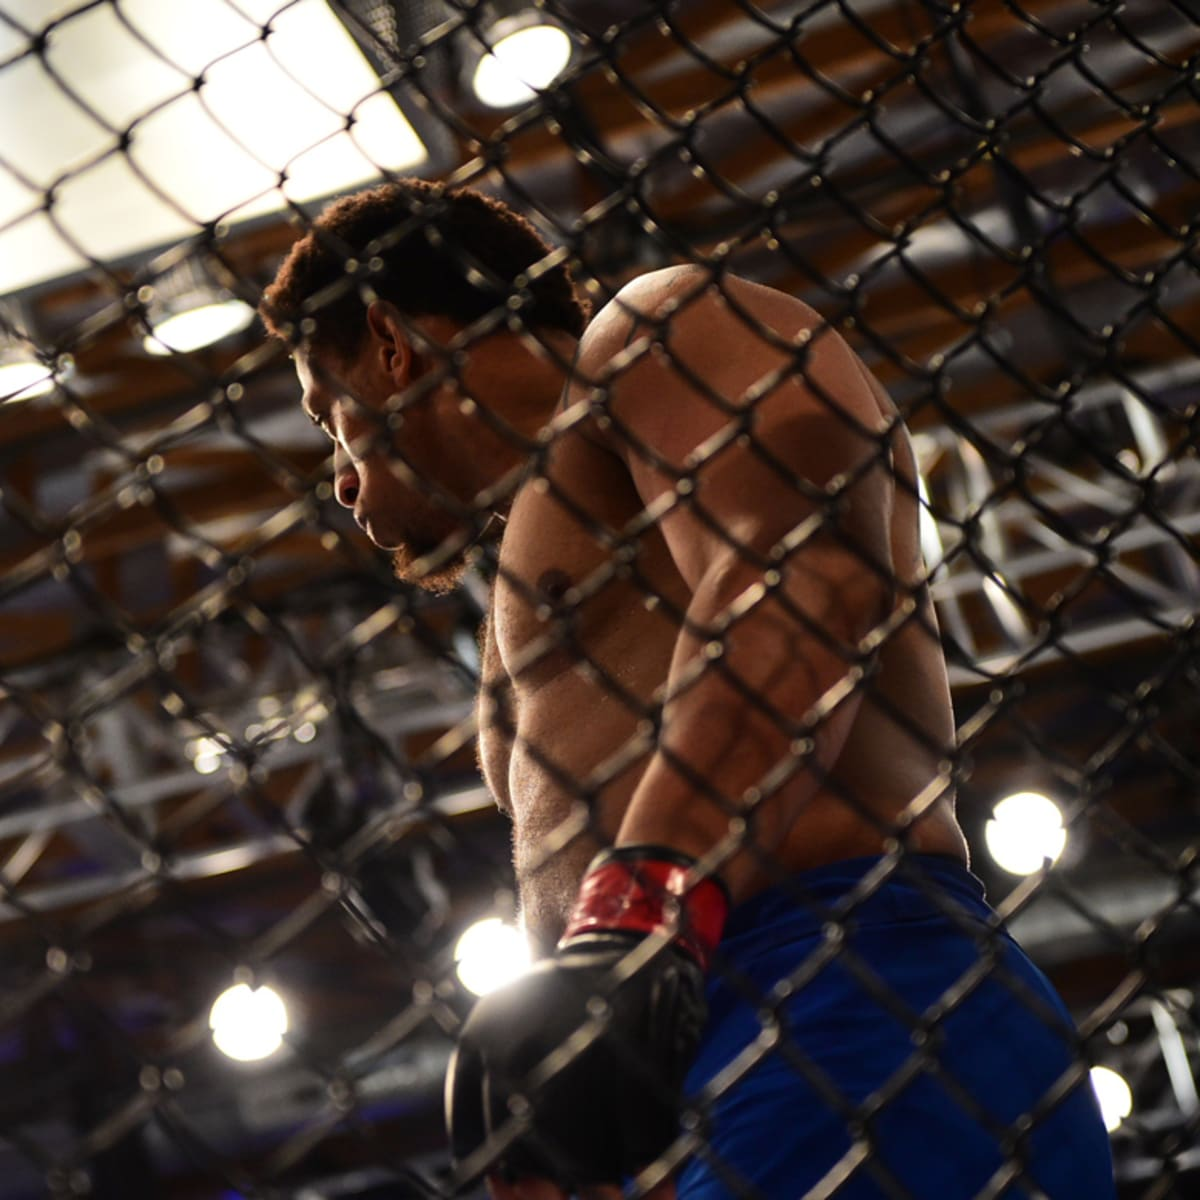 Mma fighters suck dick career Greg Hardy The Ufc And The Limits Of The Second Chance Sports Illustrated